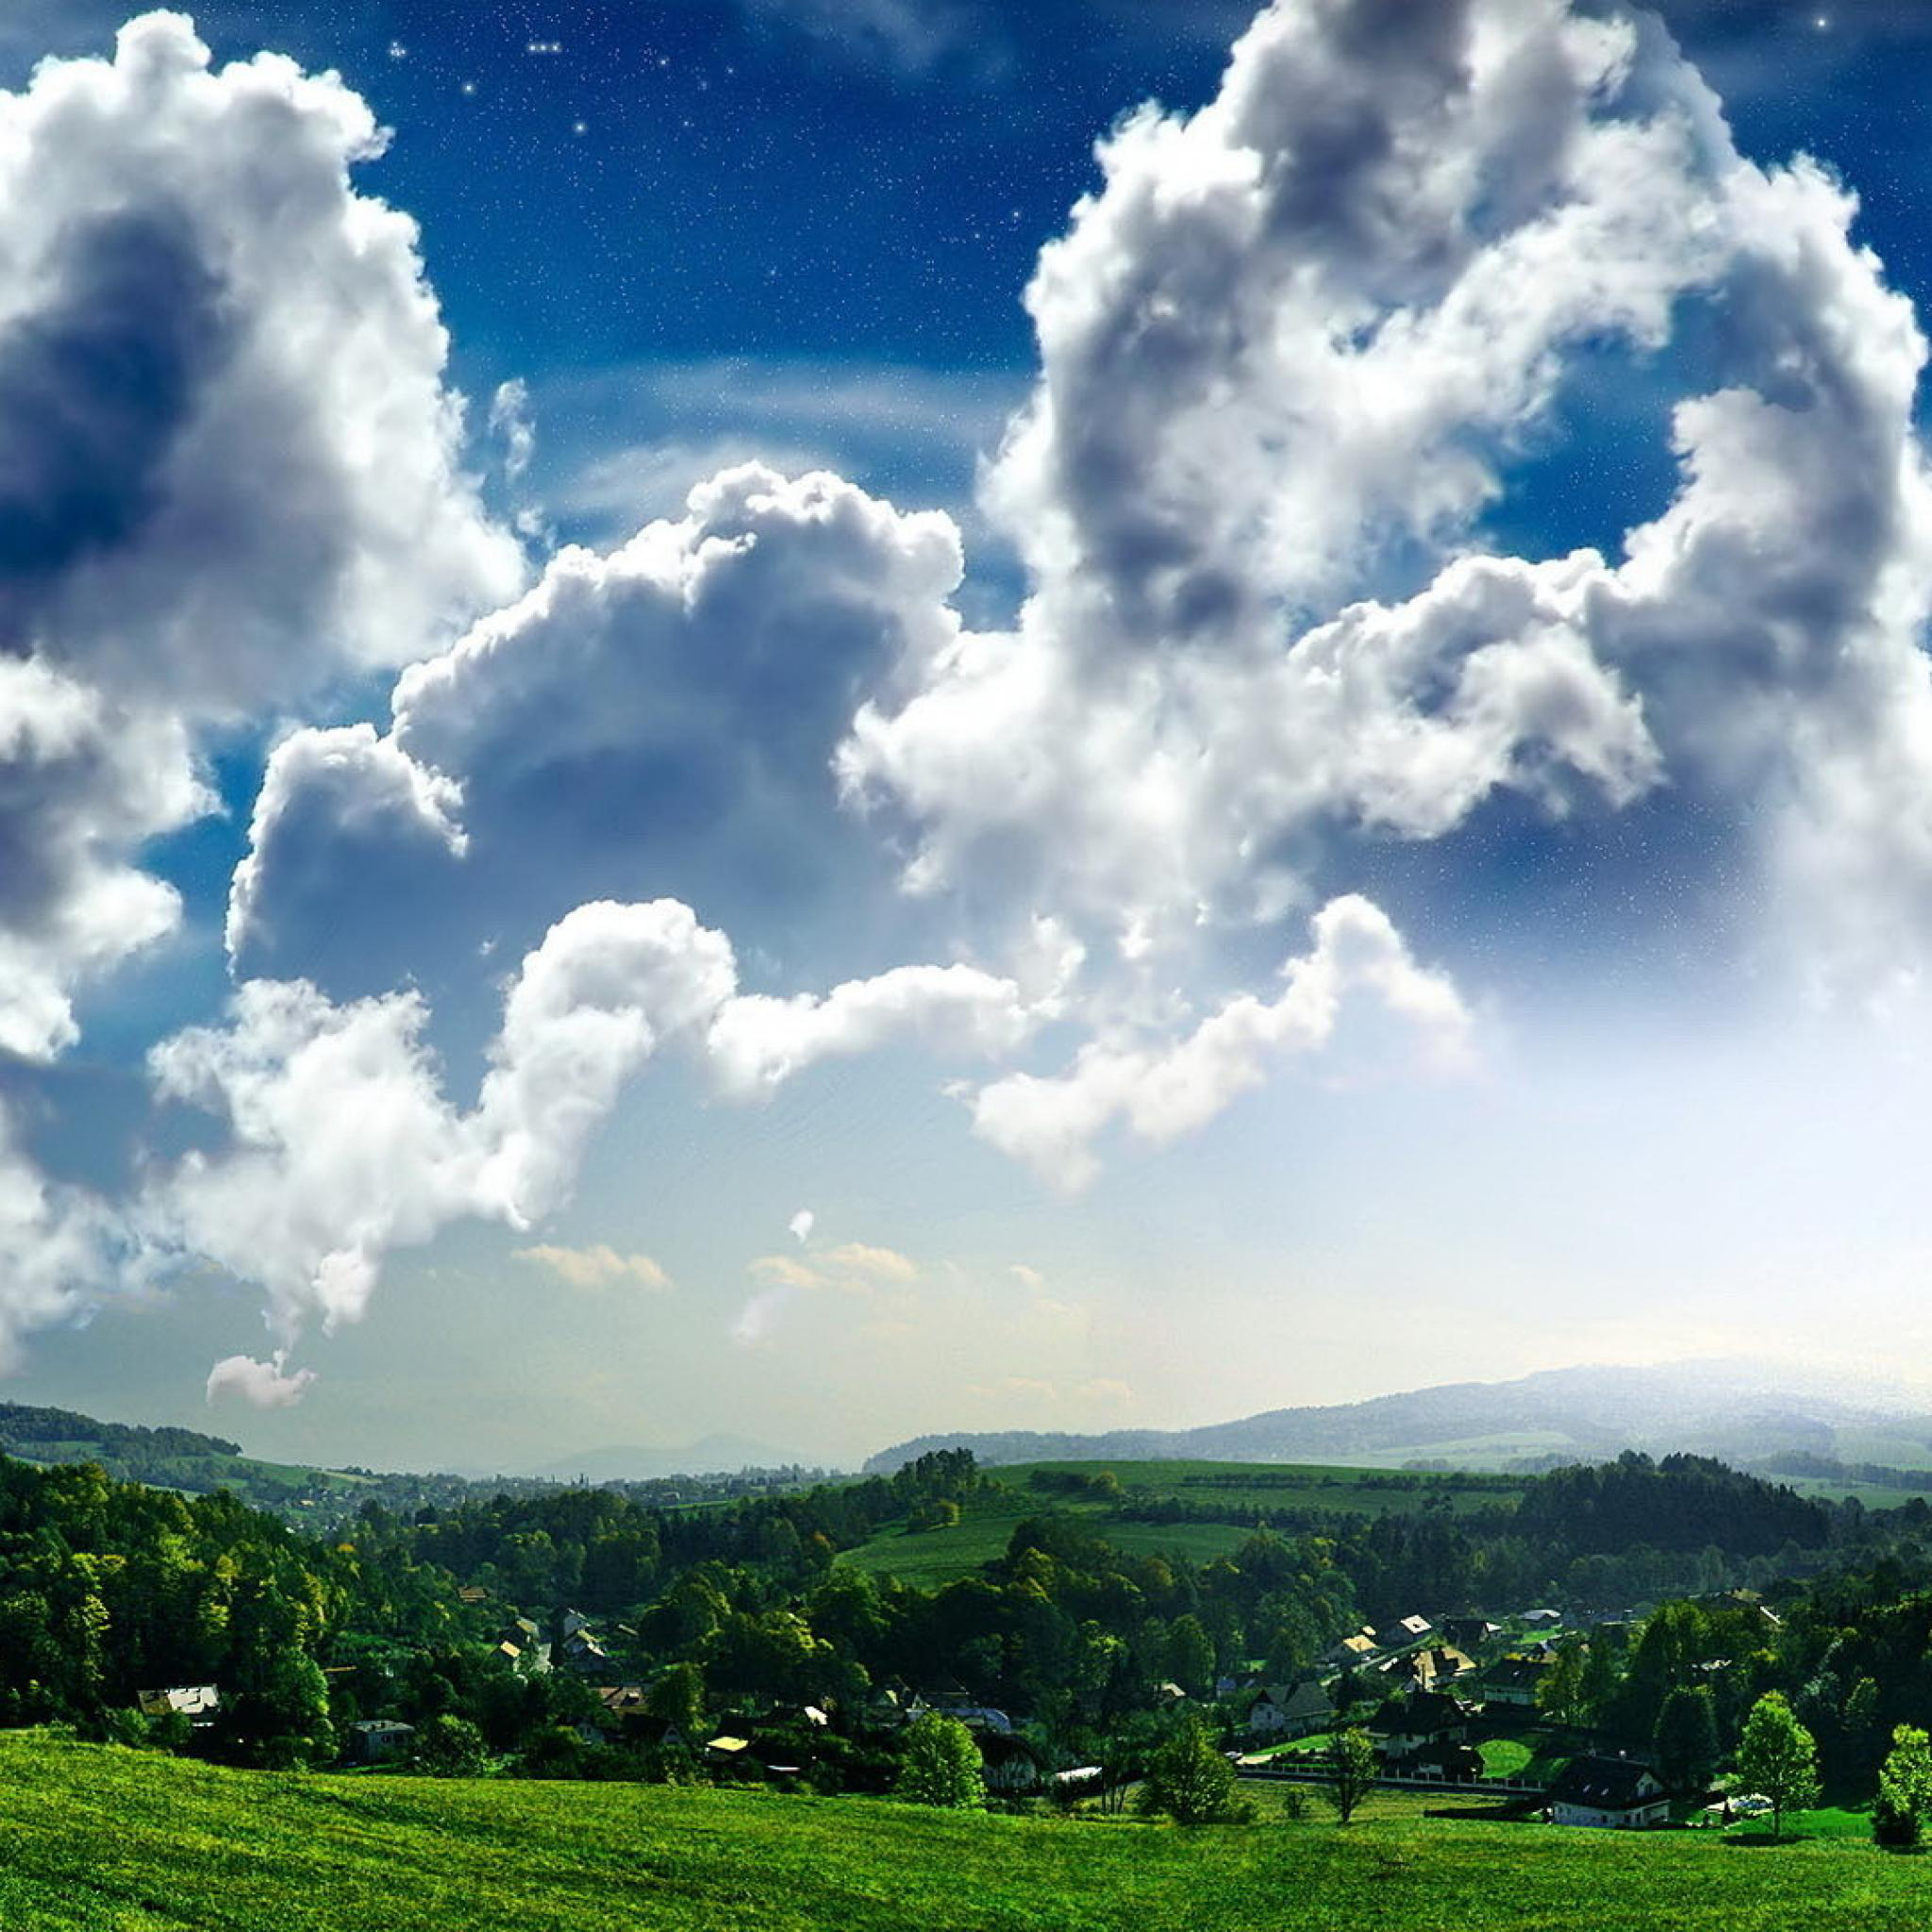 Cloud Hill Forest Sky Nature 3Wallpapers iPad Retina Cloud Hill Forest Sky Nature   iPad Retina